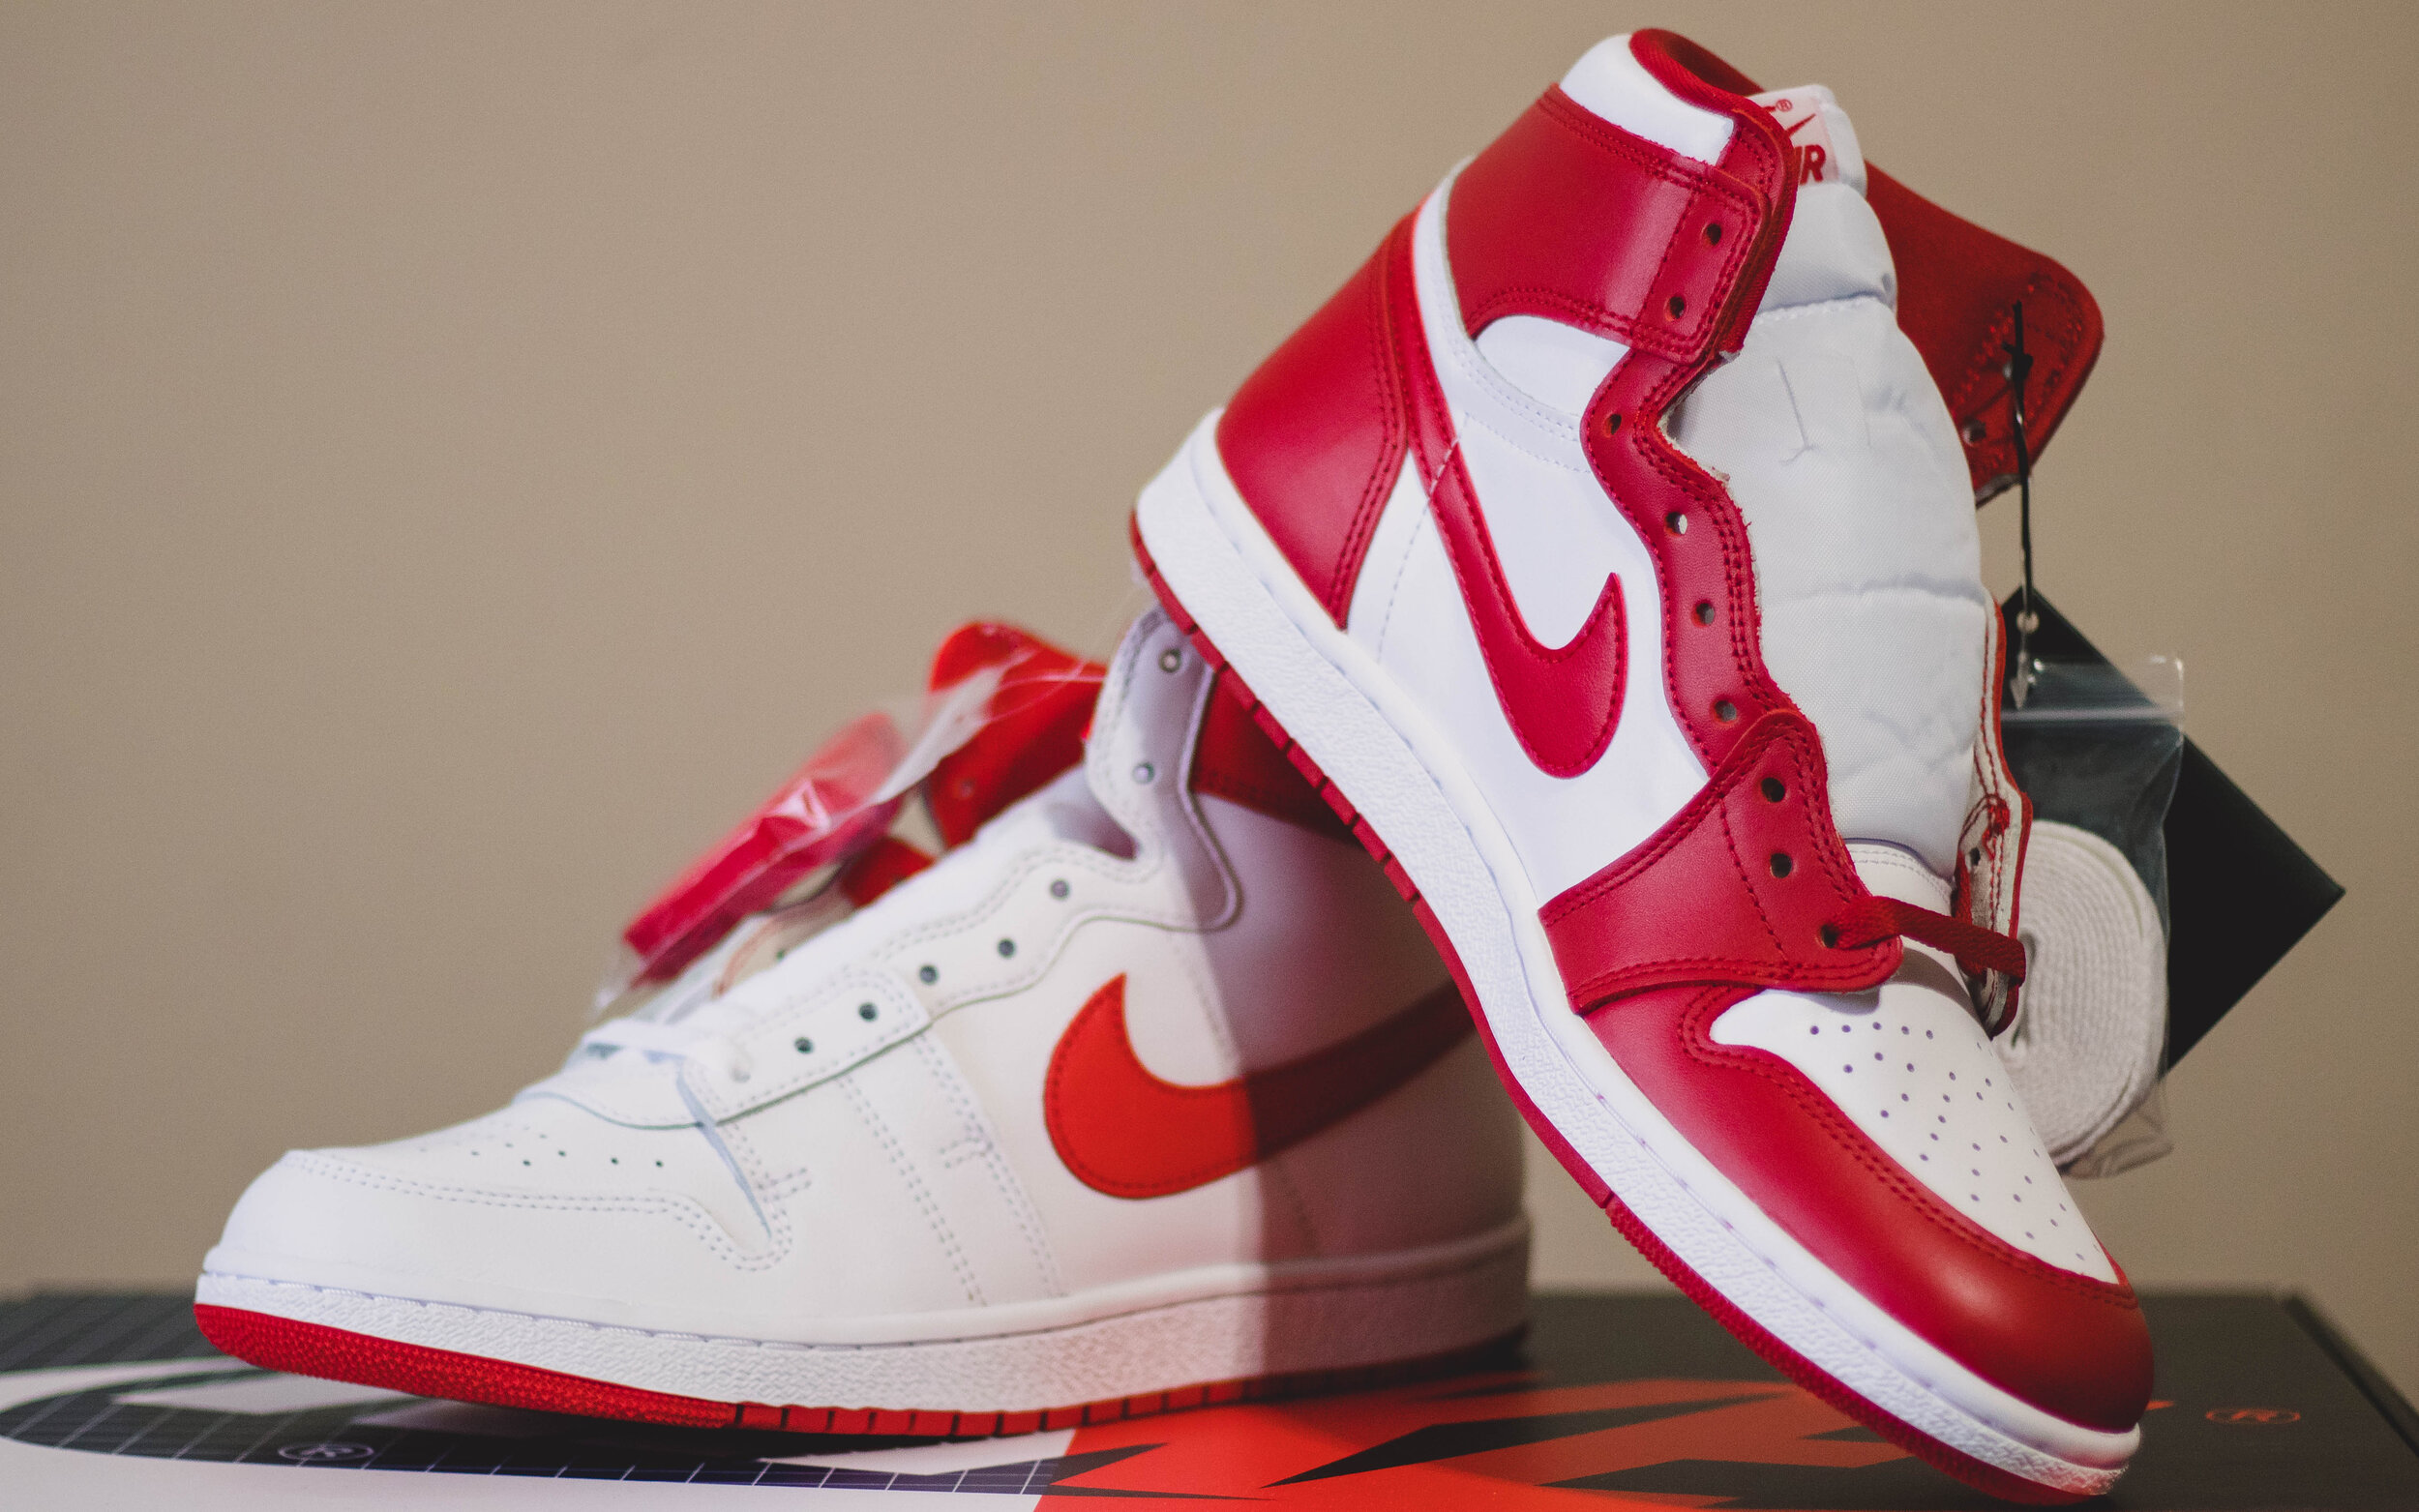 when was the first pair of jordans released